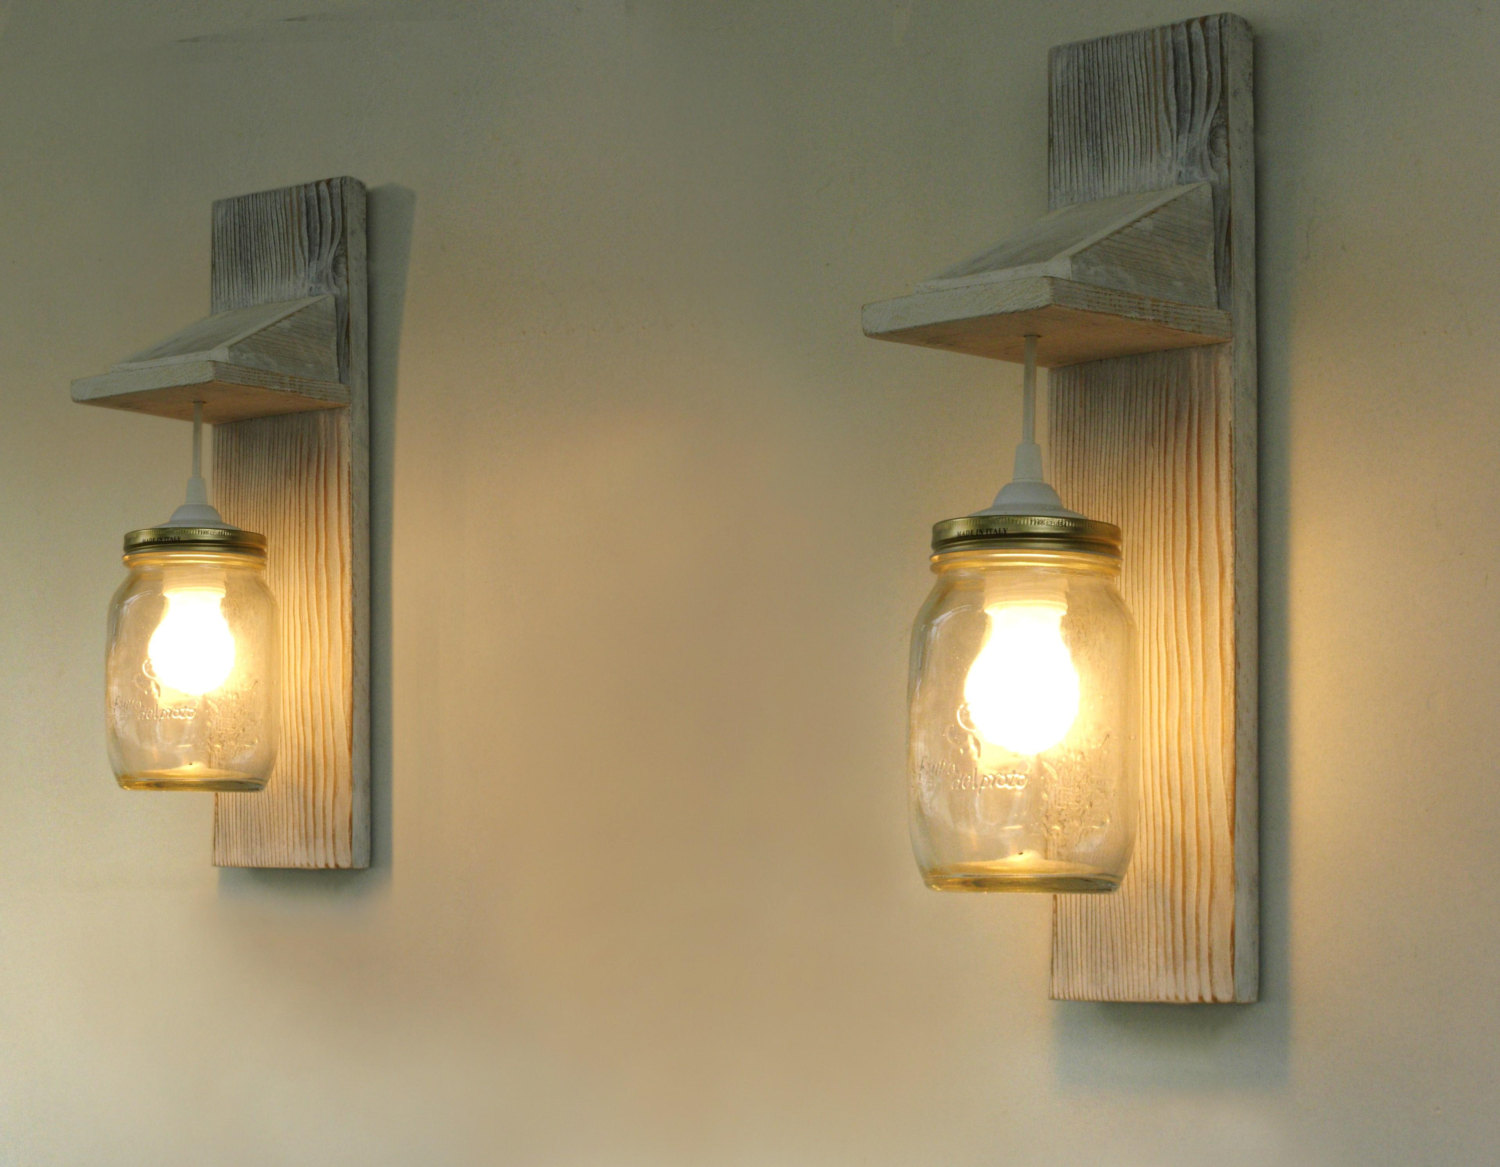 Appliques Murales Diy Wooden Wall Lights Fit Perfectly To The Interiors Of